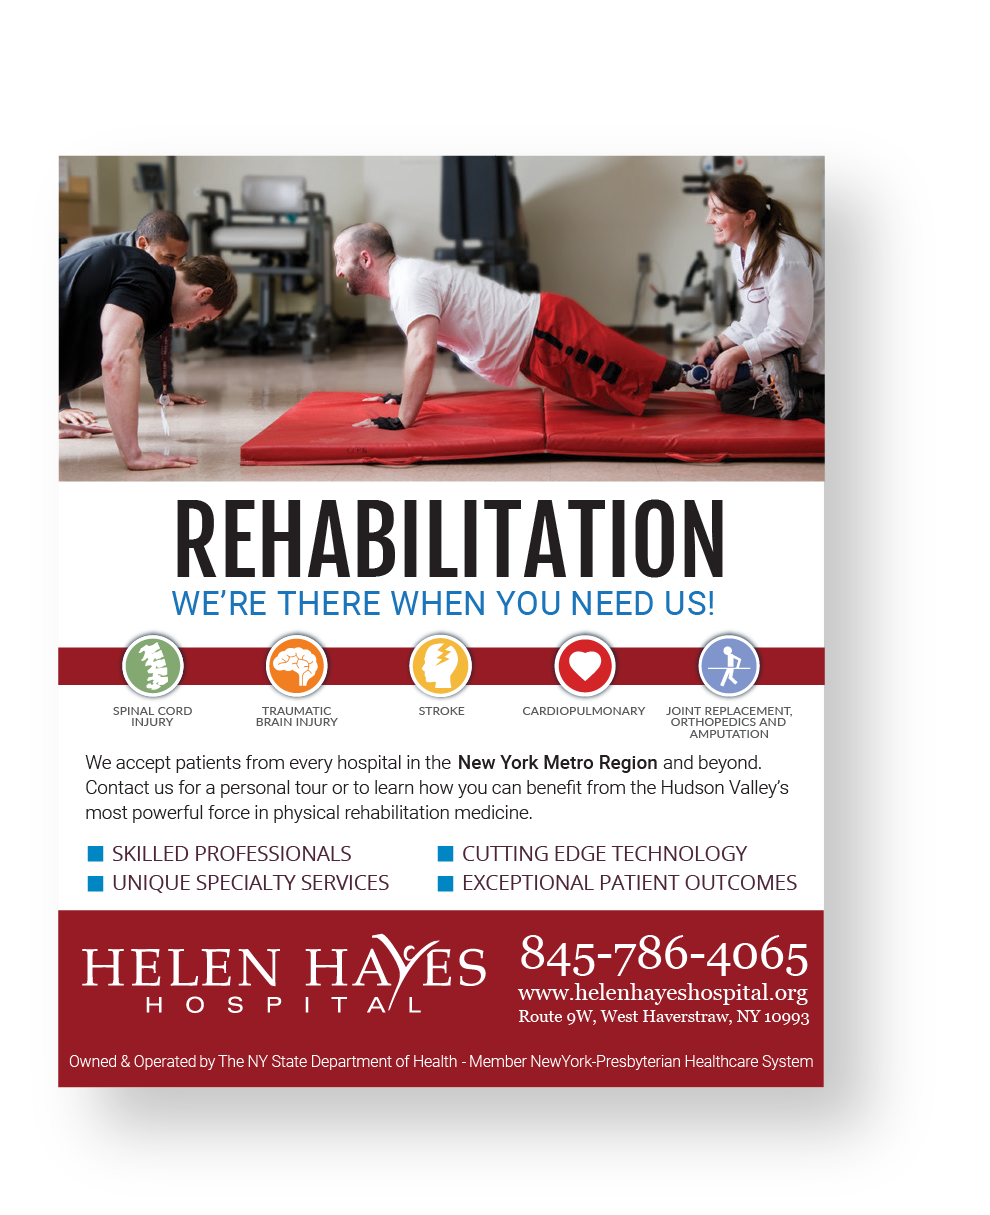 Helen Hayes Hospital rehabilitation advert